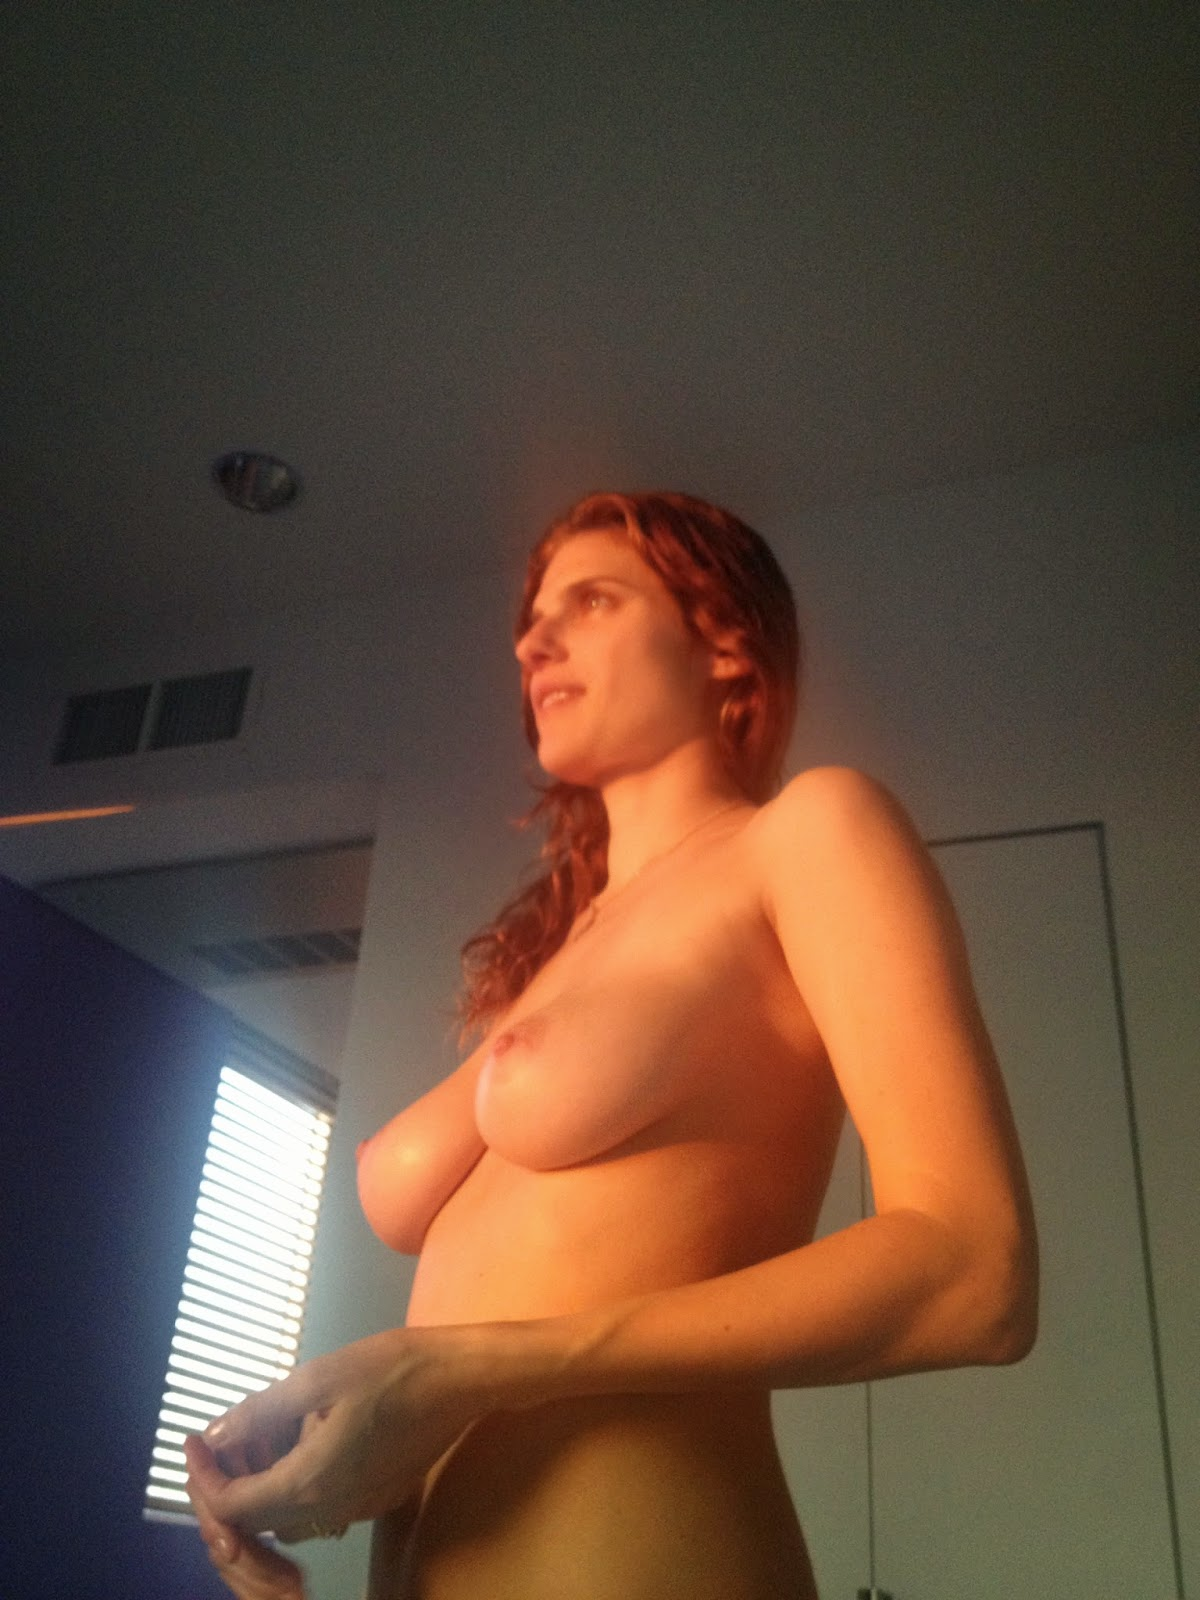 Naked images of pinky the pornstar